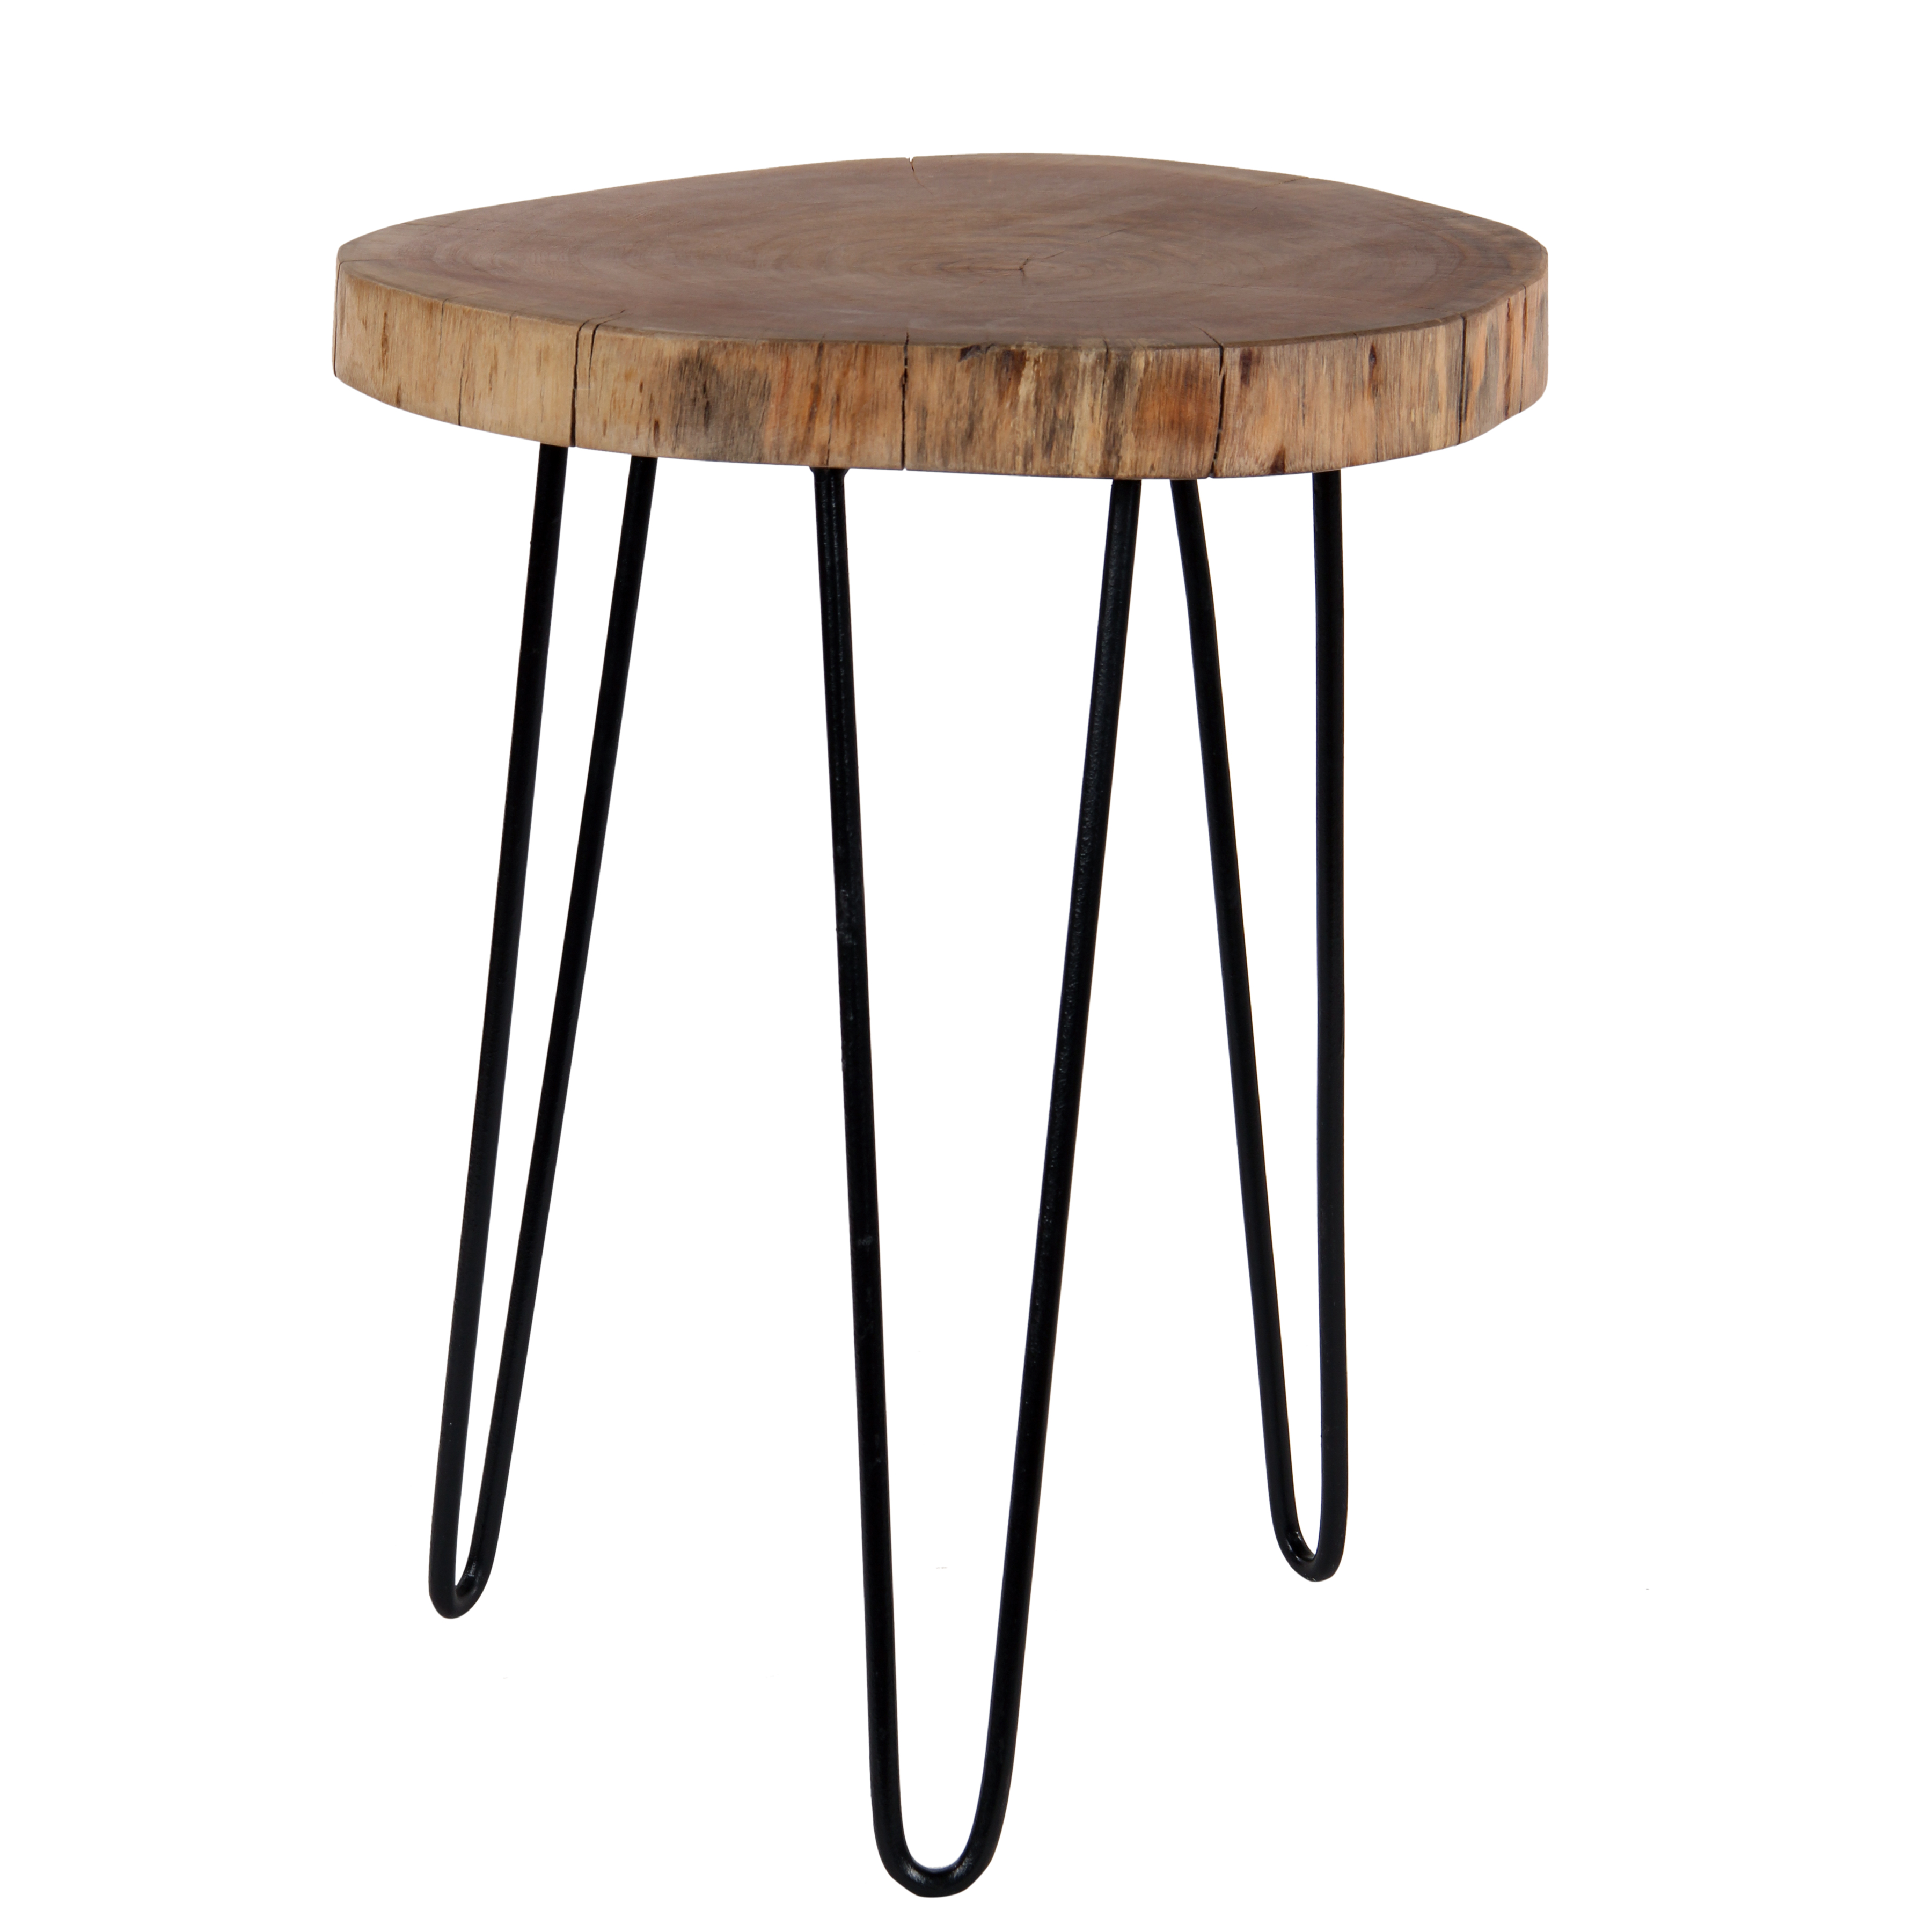 Intradeglobal Acacia Wood Live Edge Stool With Hairpin Legs Natural